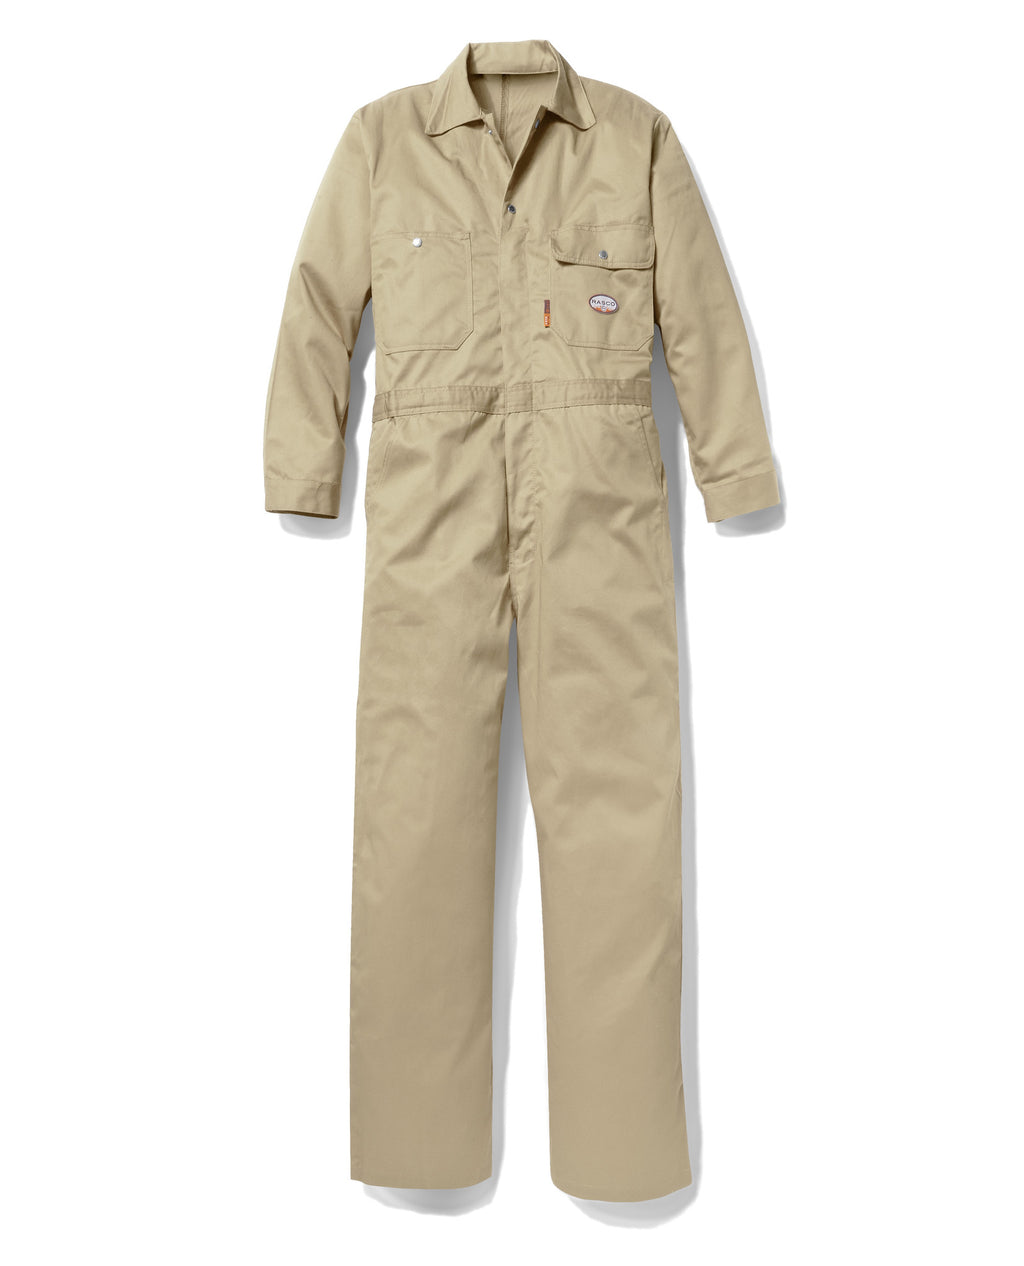 Rasco FR Lightweight Khaki Coveralls